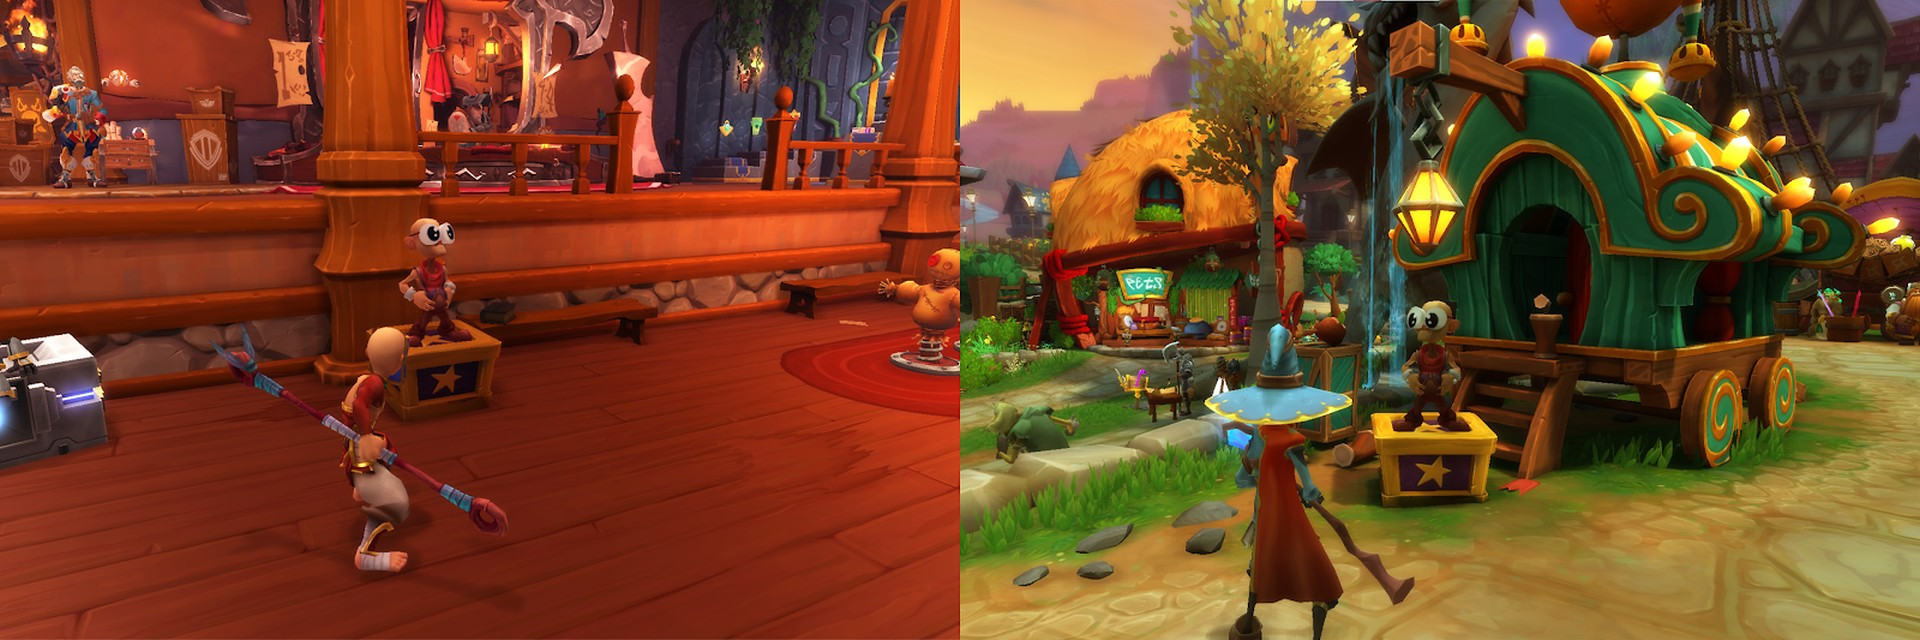 Dungeon Defenders II Spring Cleaning Update Brings Big Changes to Etheria DLGAMES - Download All Your Games For Free